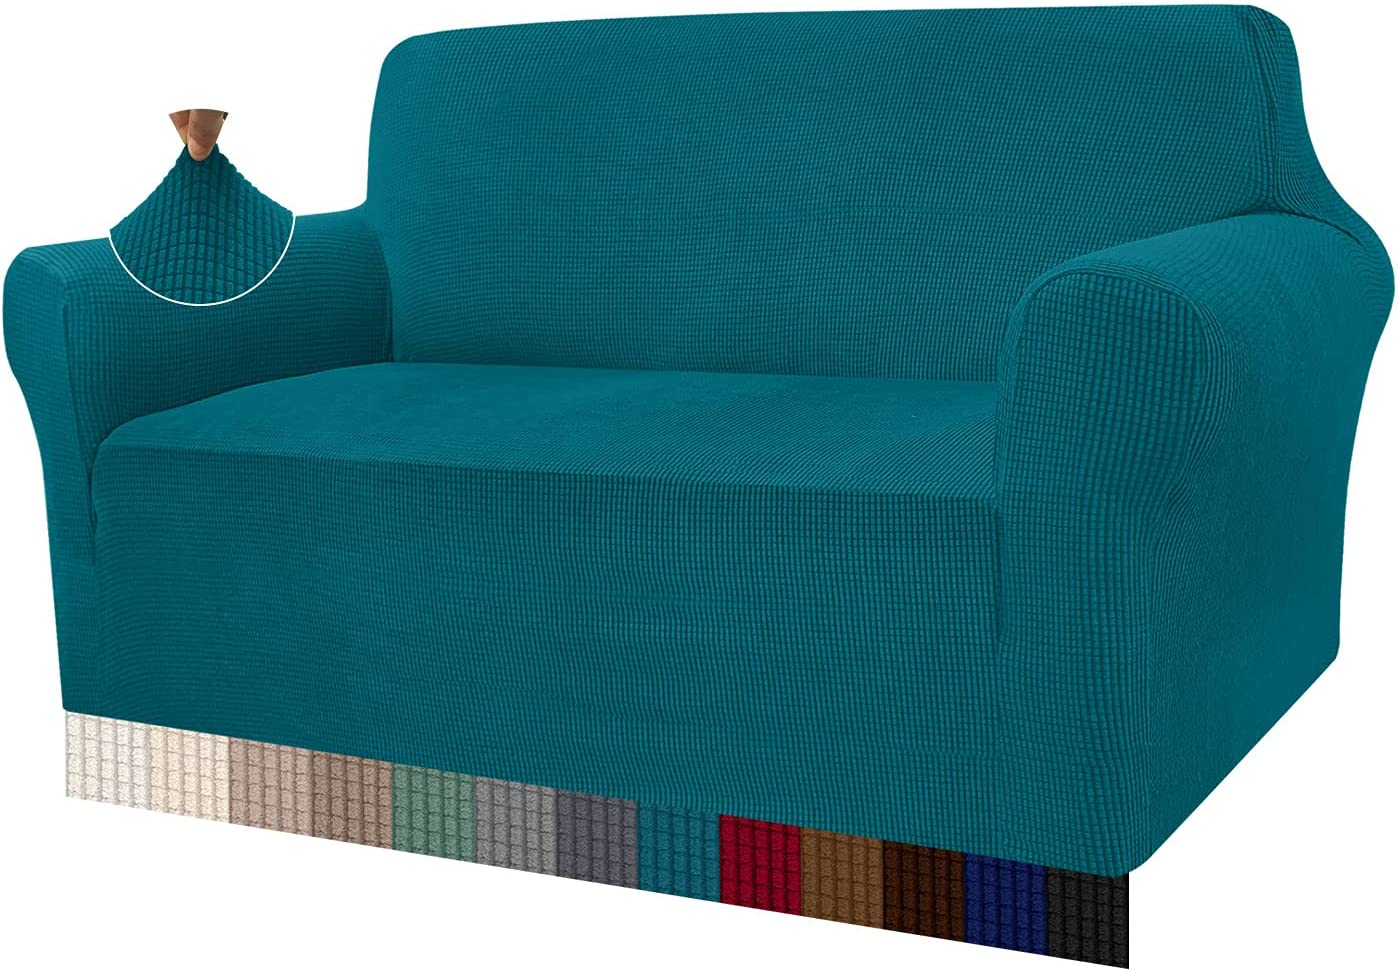 Granbest Loveseat Slipcover 1-Piece Stretch Soft Universal Couch Covers Jacquard Sofa Cover for Dogs Non Slip Furniture Protector Machine Washable (Medium, Blackish Green)